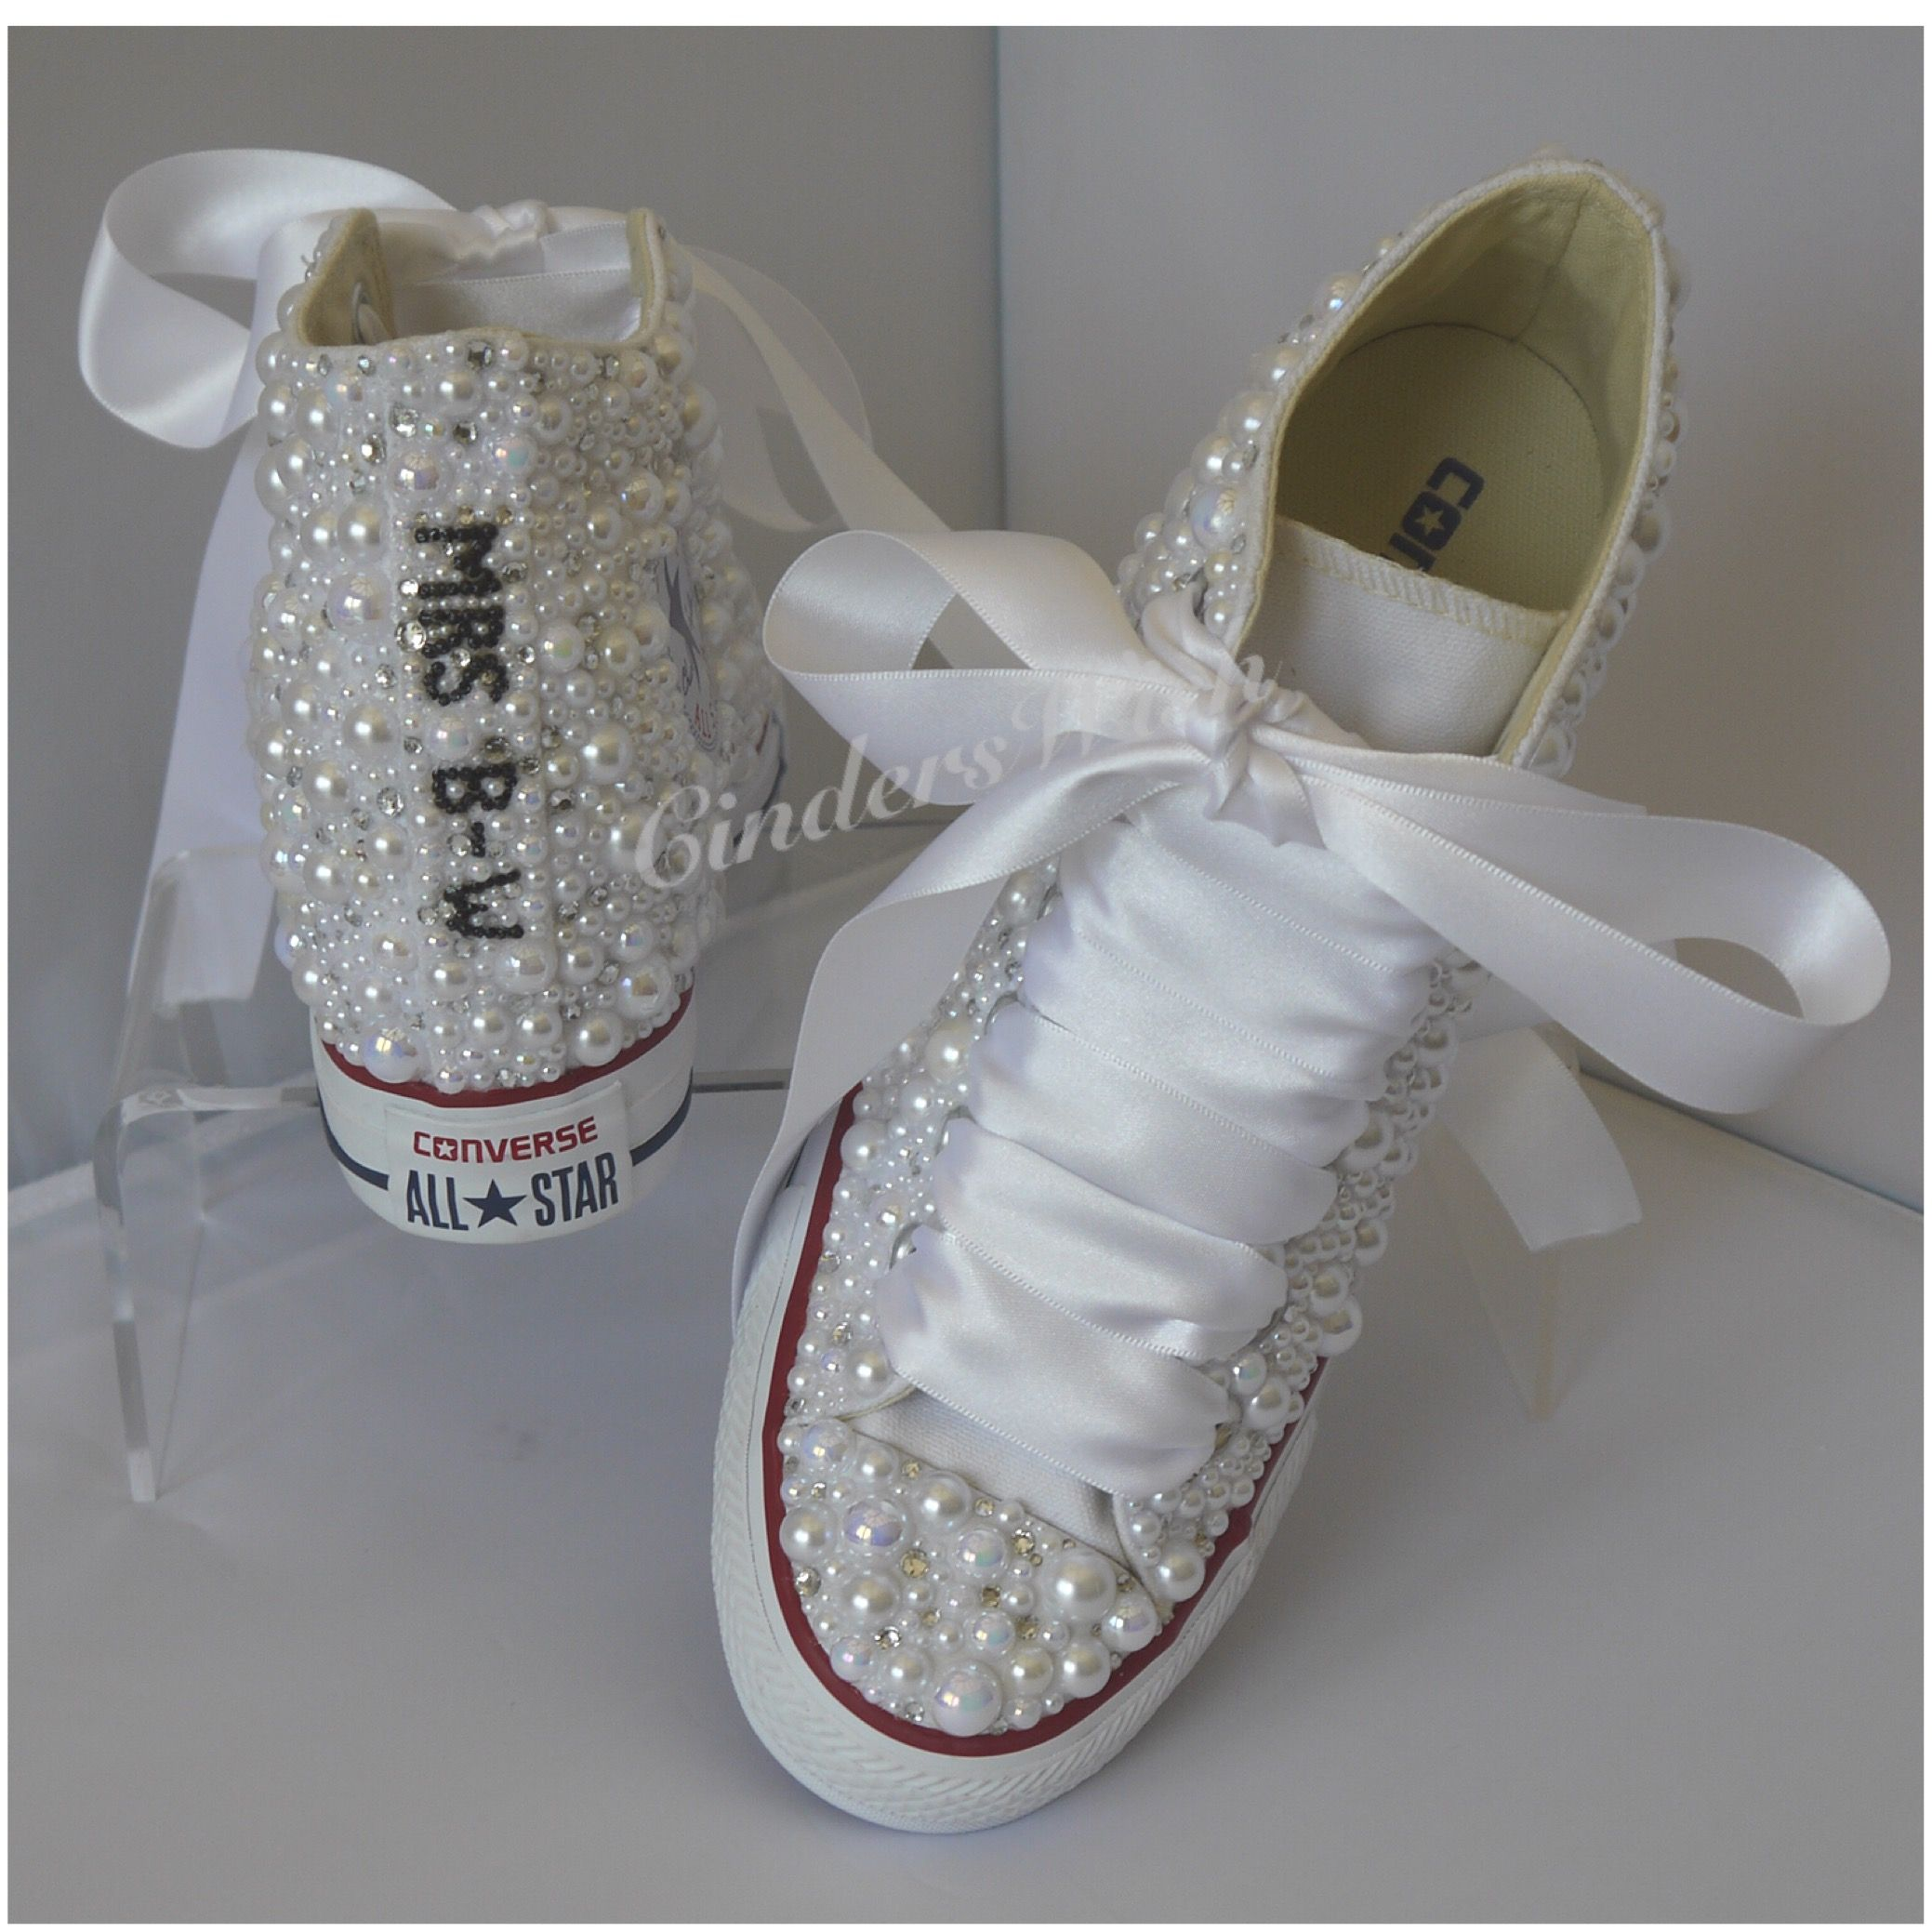 ed2e3ca13c9 All over pearls converse   wedding converse    wedge  vintage  pearls   personalised  weddingshoes  oneofakind  original  customisedfootwear  gems   crystals ...